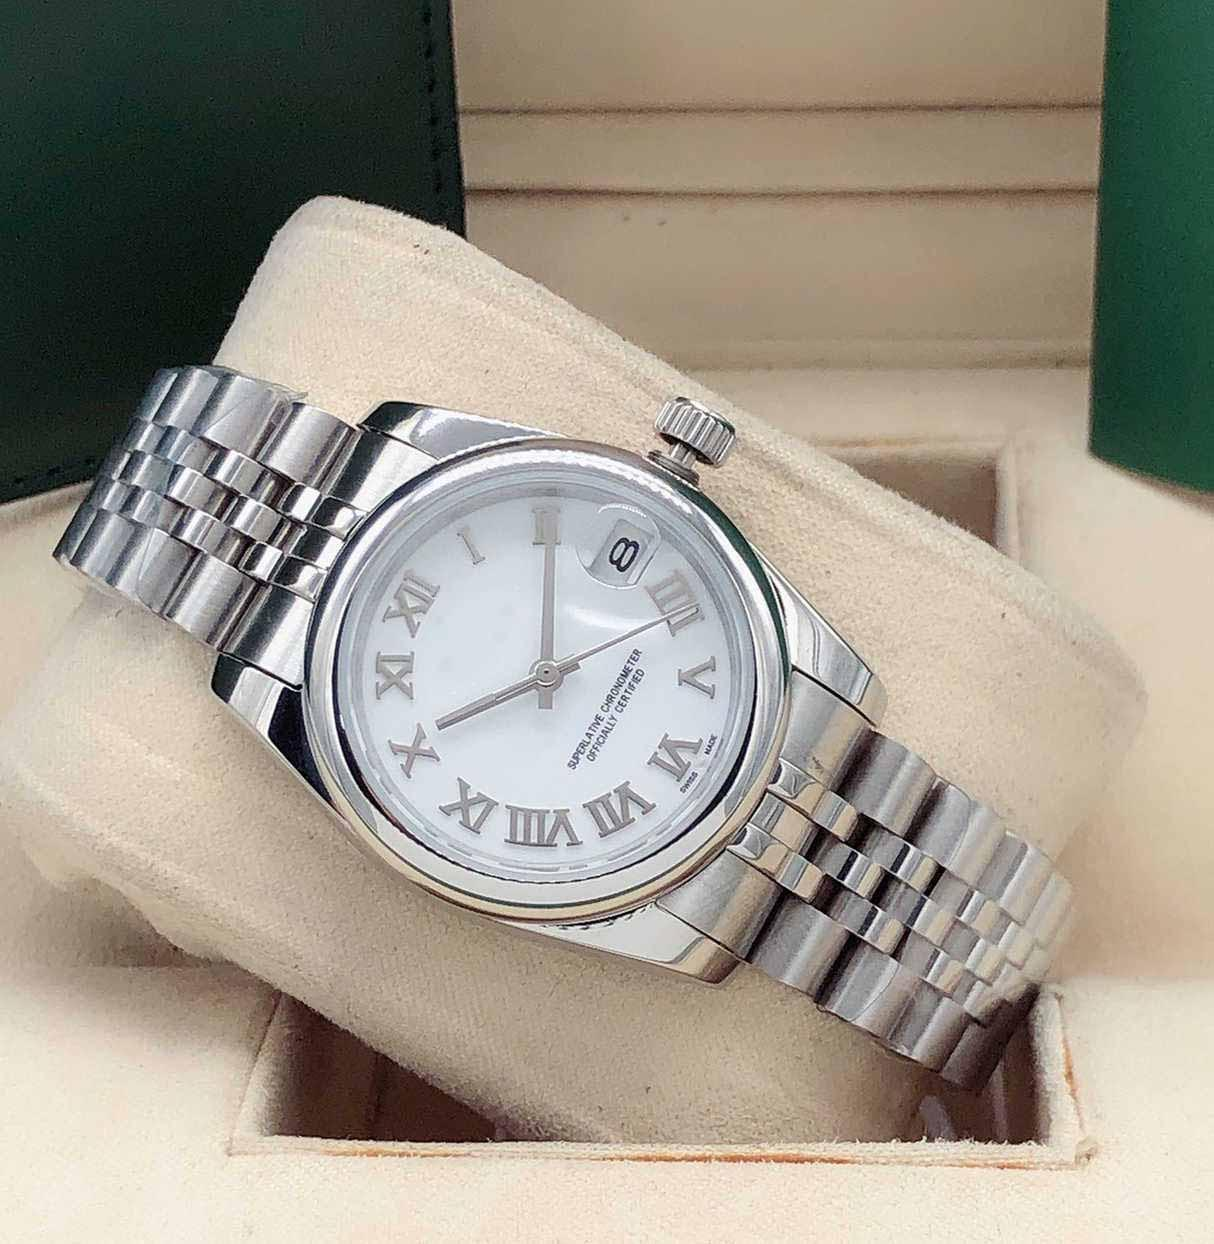 Ladies Watch Sapphire Mirror 31mm Automatic Mechanical Watch High Quality Stainless Steel Date Waterproof Watches Fashion Classic Wristwatch